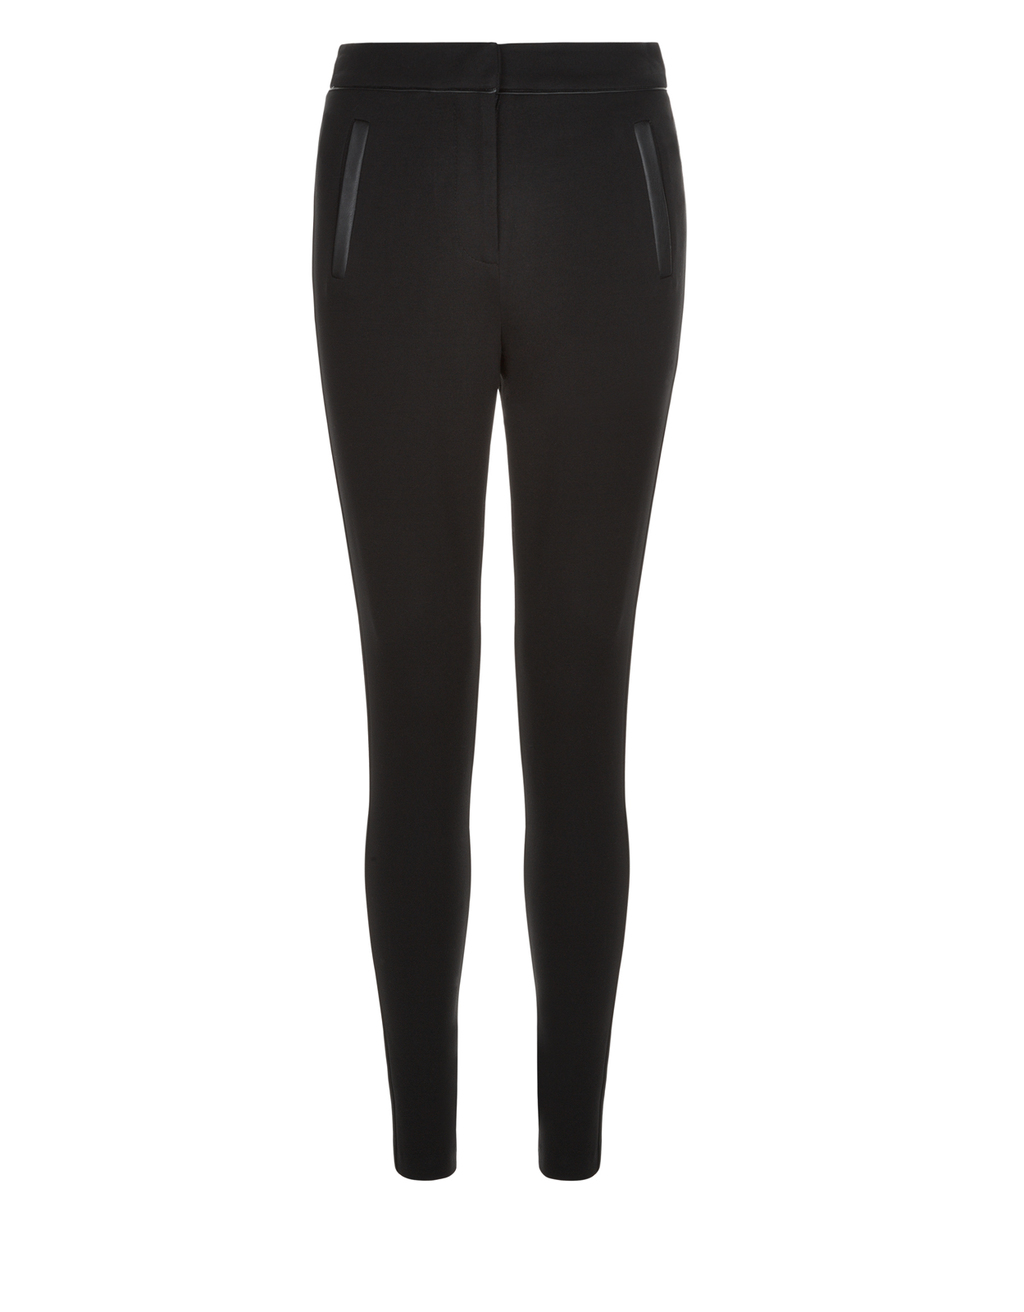 Patsy Ponte Legging - length: standard; pattern: plain; style: leggings; waist: mid/regular rise; predominant colour: black; occasions: casual; fibres: polyester/polyamide - 100%; texture group: jersey - clingy; fit: skinny/tight leg; pattern type: fabric; wardrobe: basic; season: a/w 2016